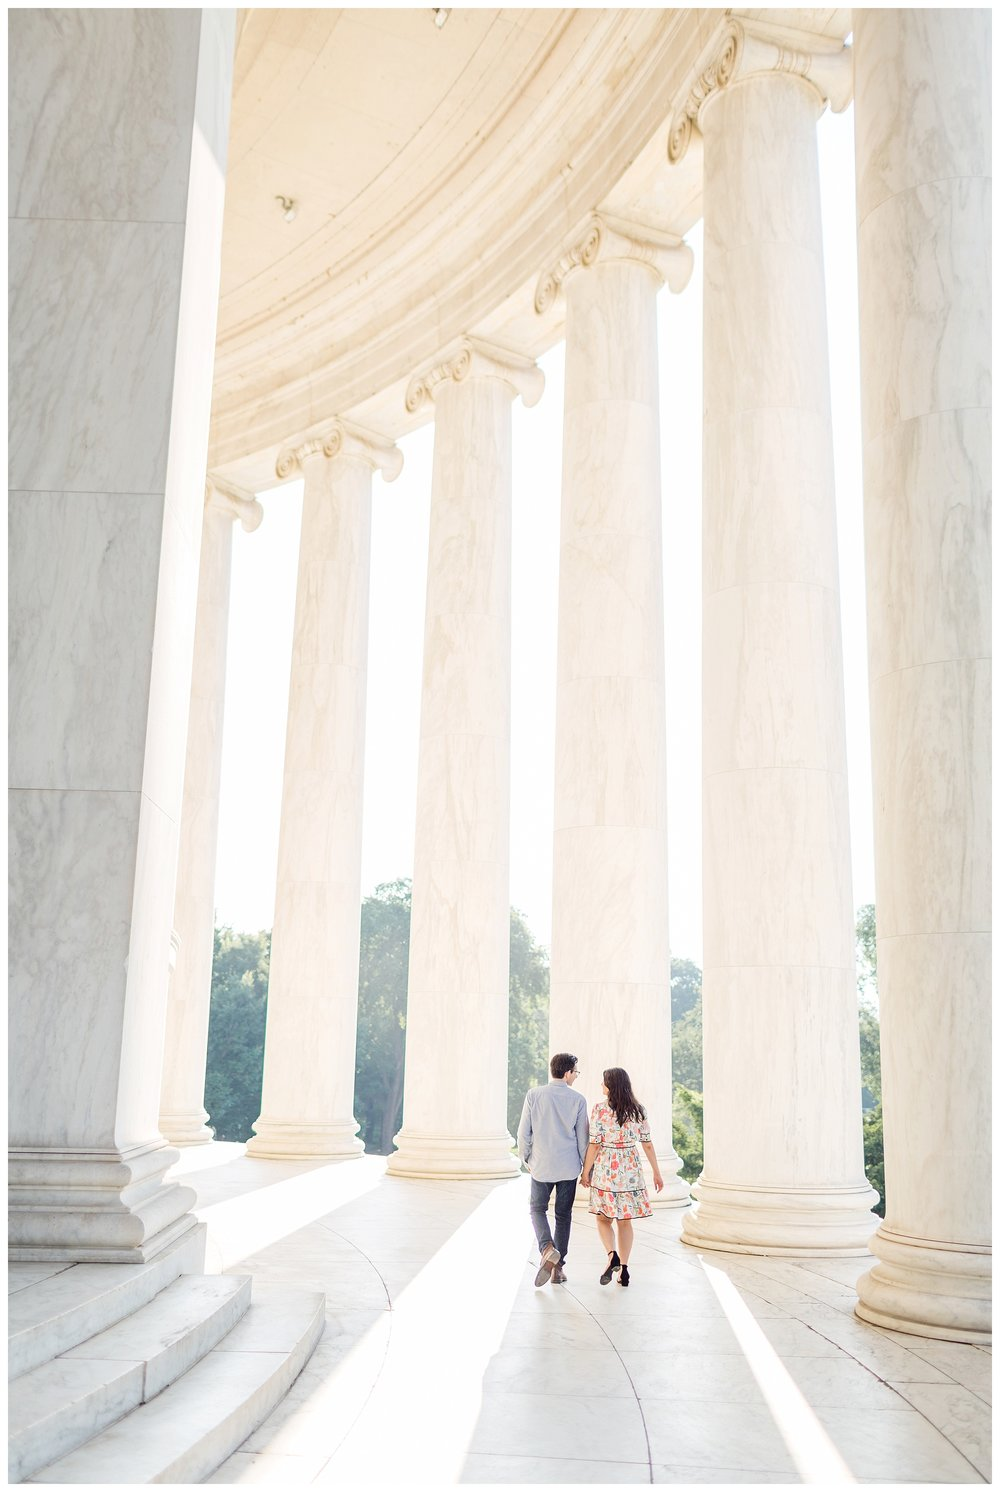 Capitol Hill Engagement Photos DC Wedding Photographer Kir Tuben_0001.jpg